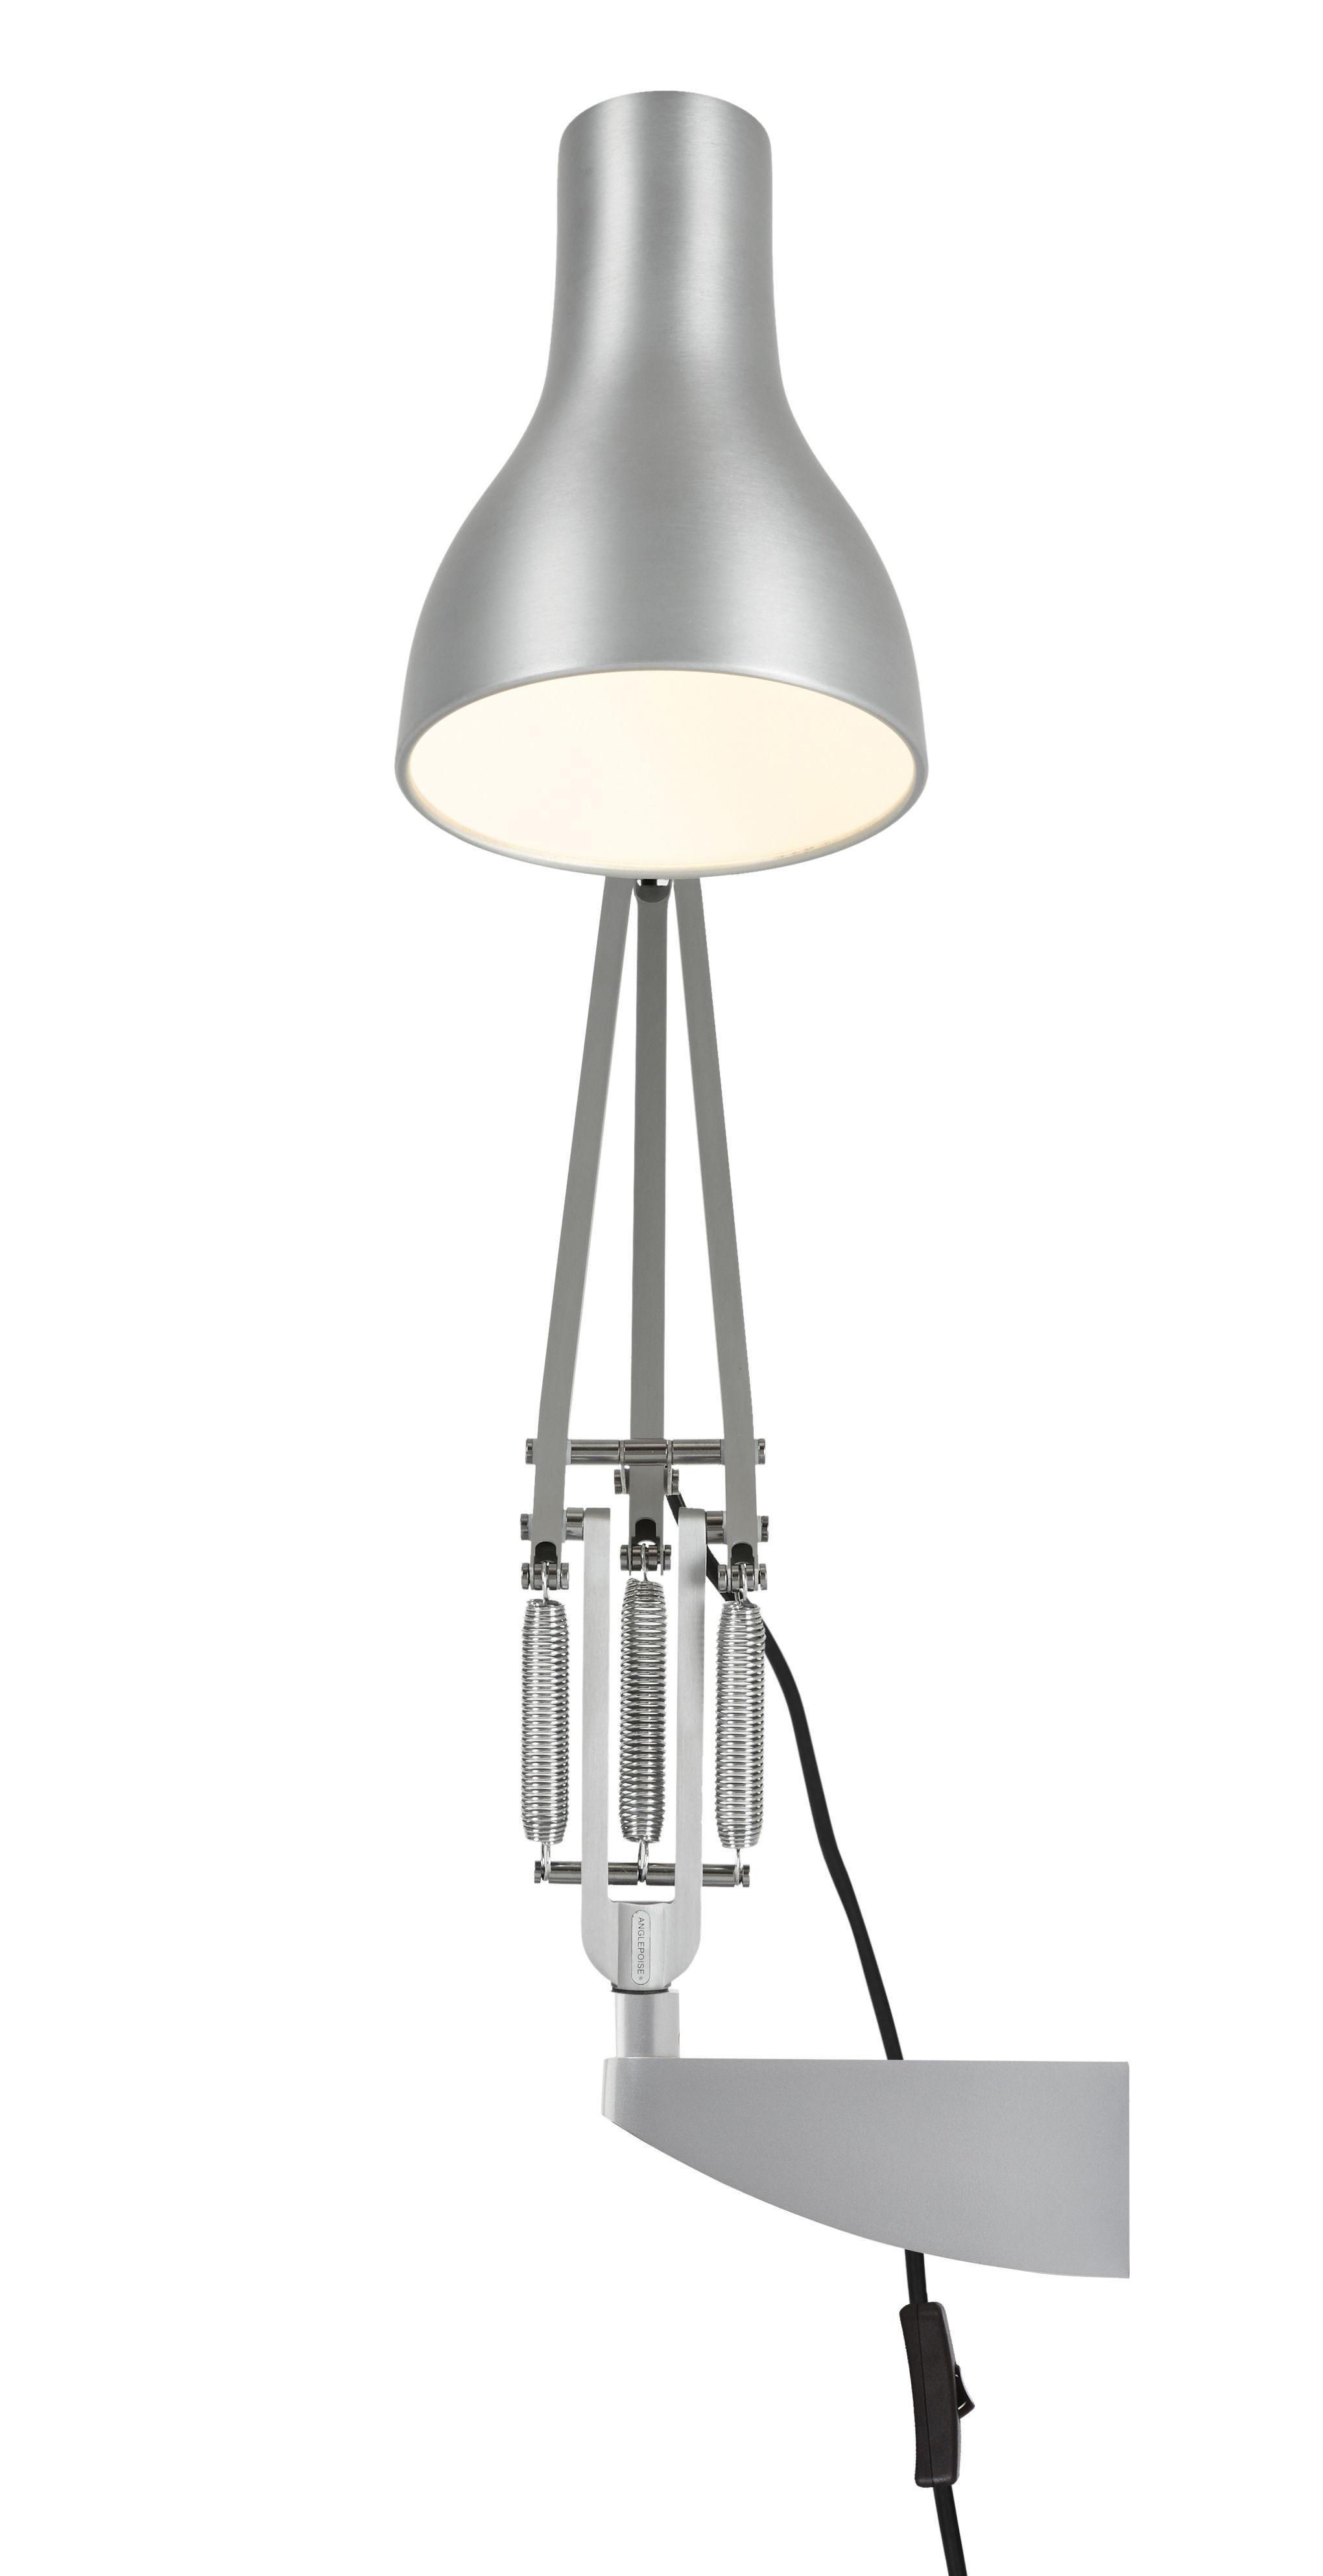 Wall Fixation Anglepoise Lamps Chromed